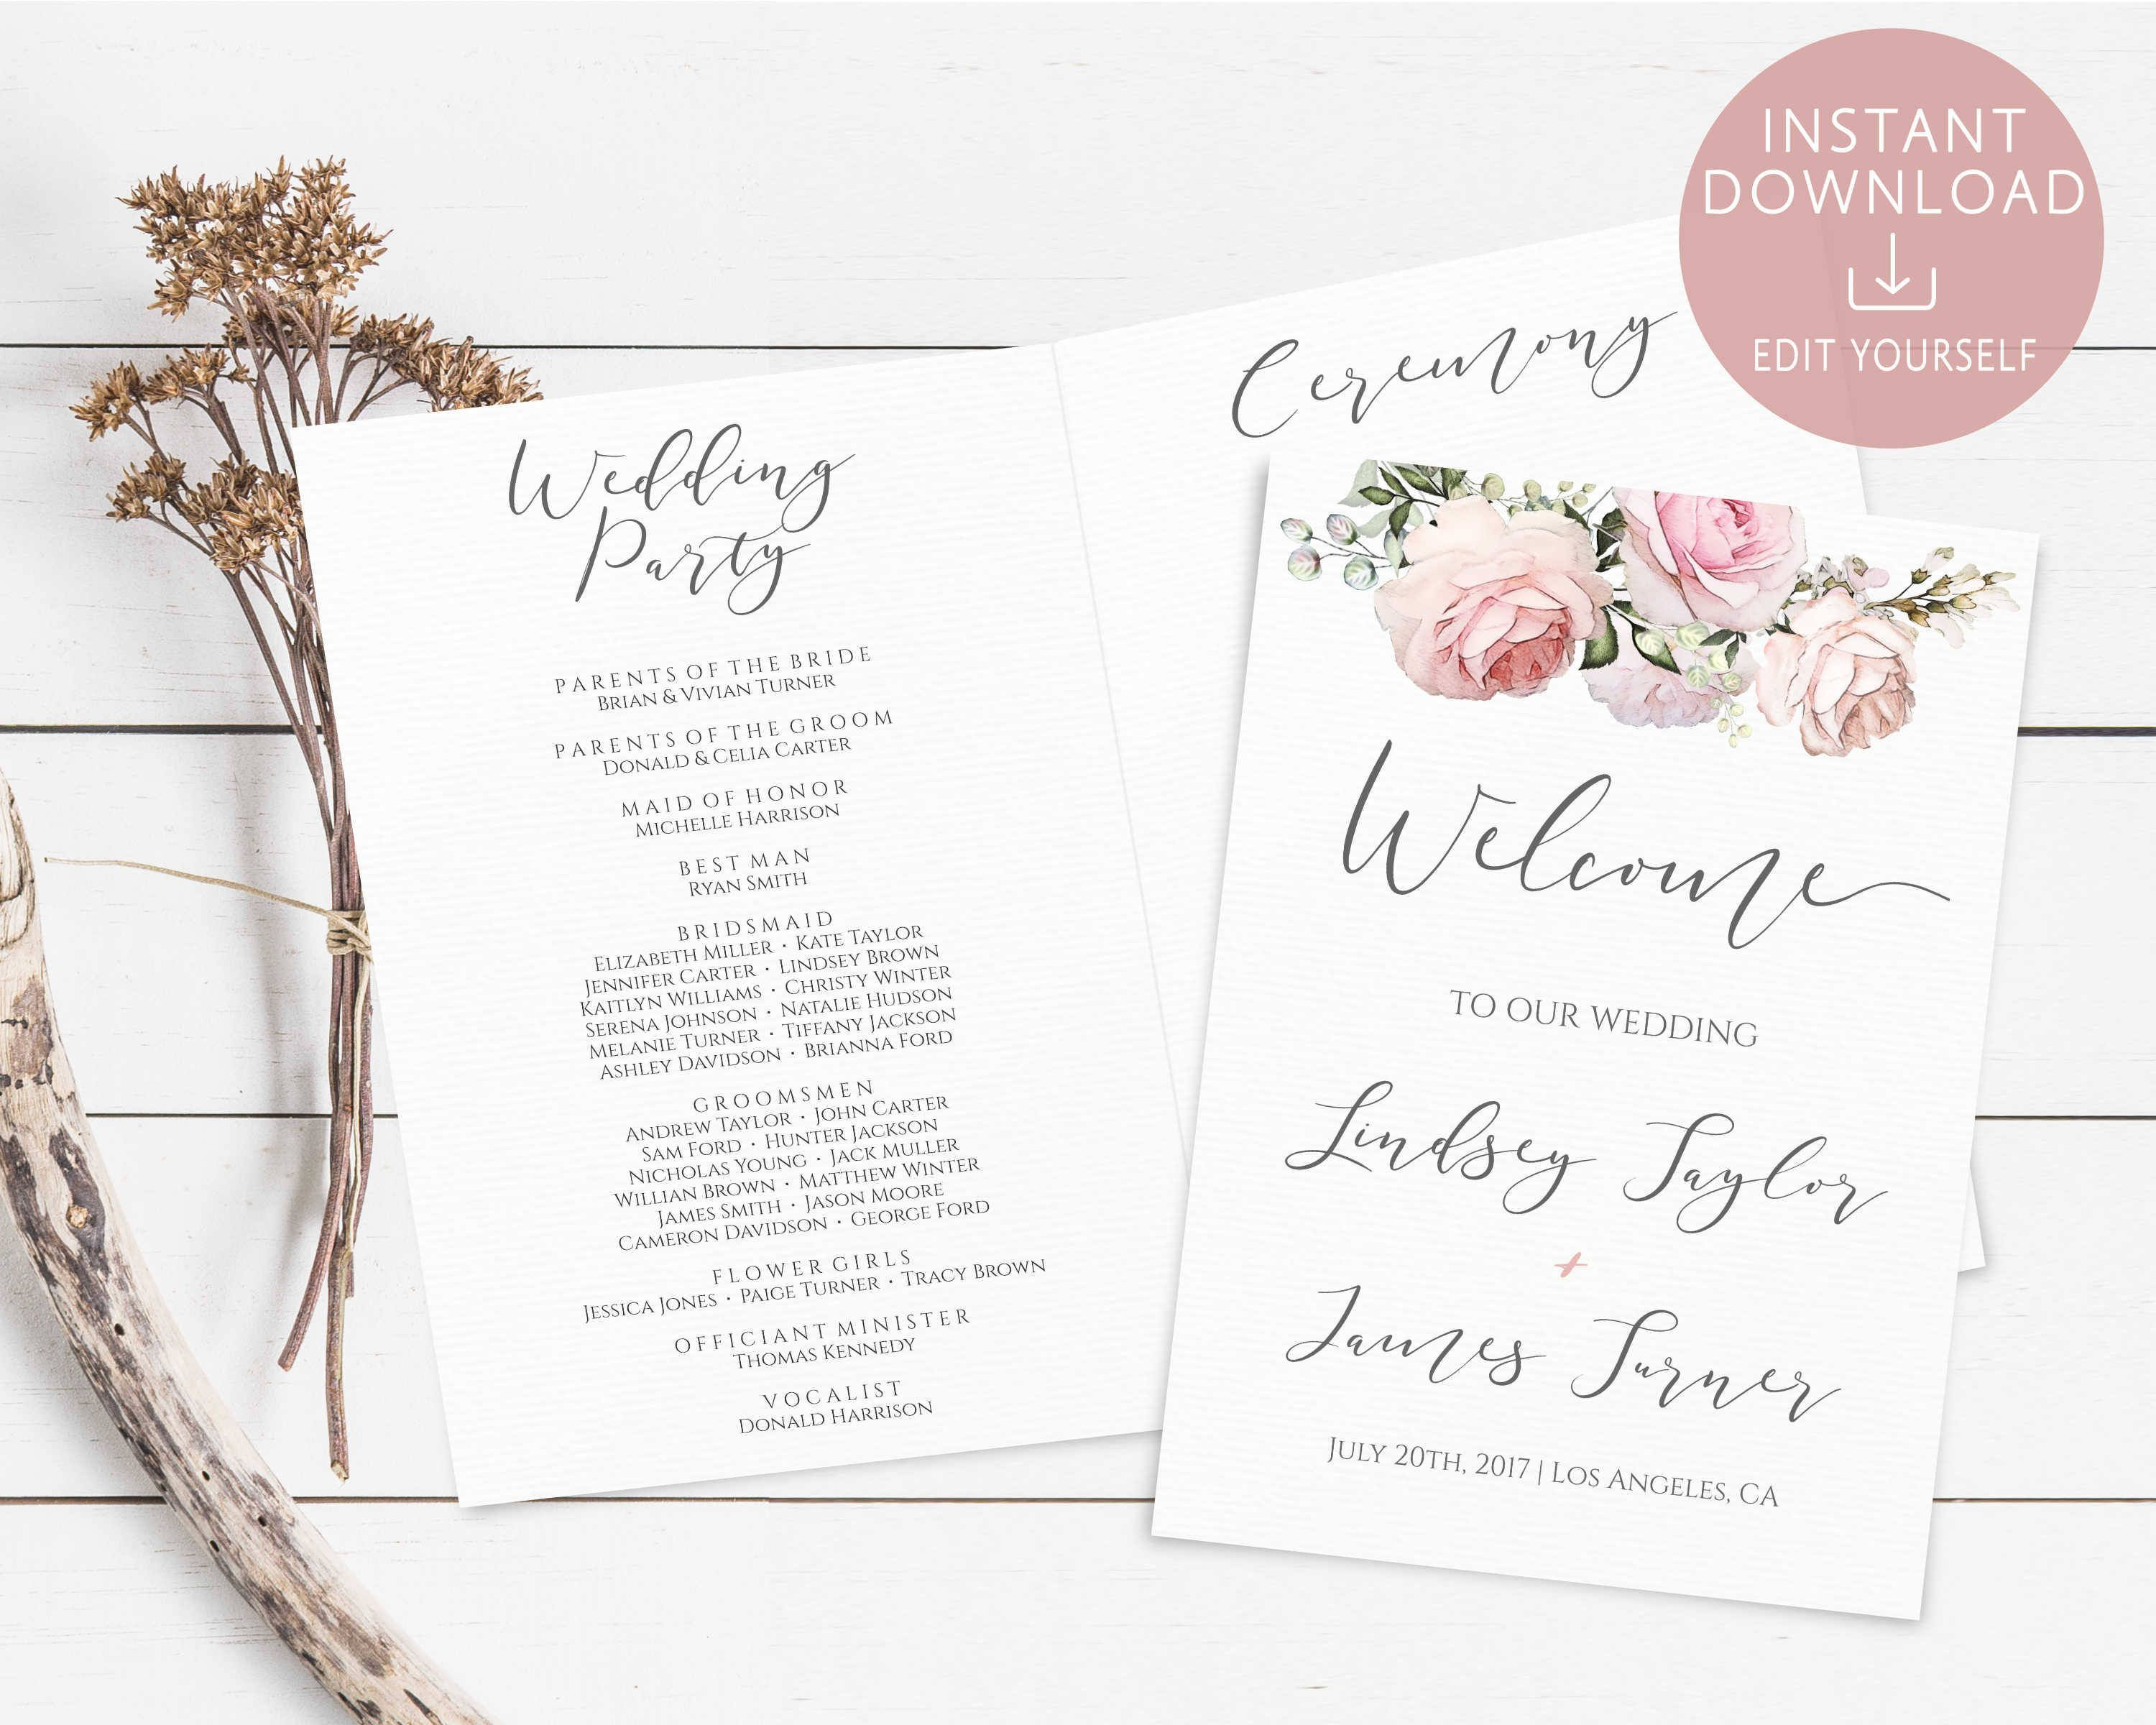 002 Magnificent Wedding Order Of Service Template Pdf Highest Quality Full